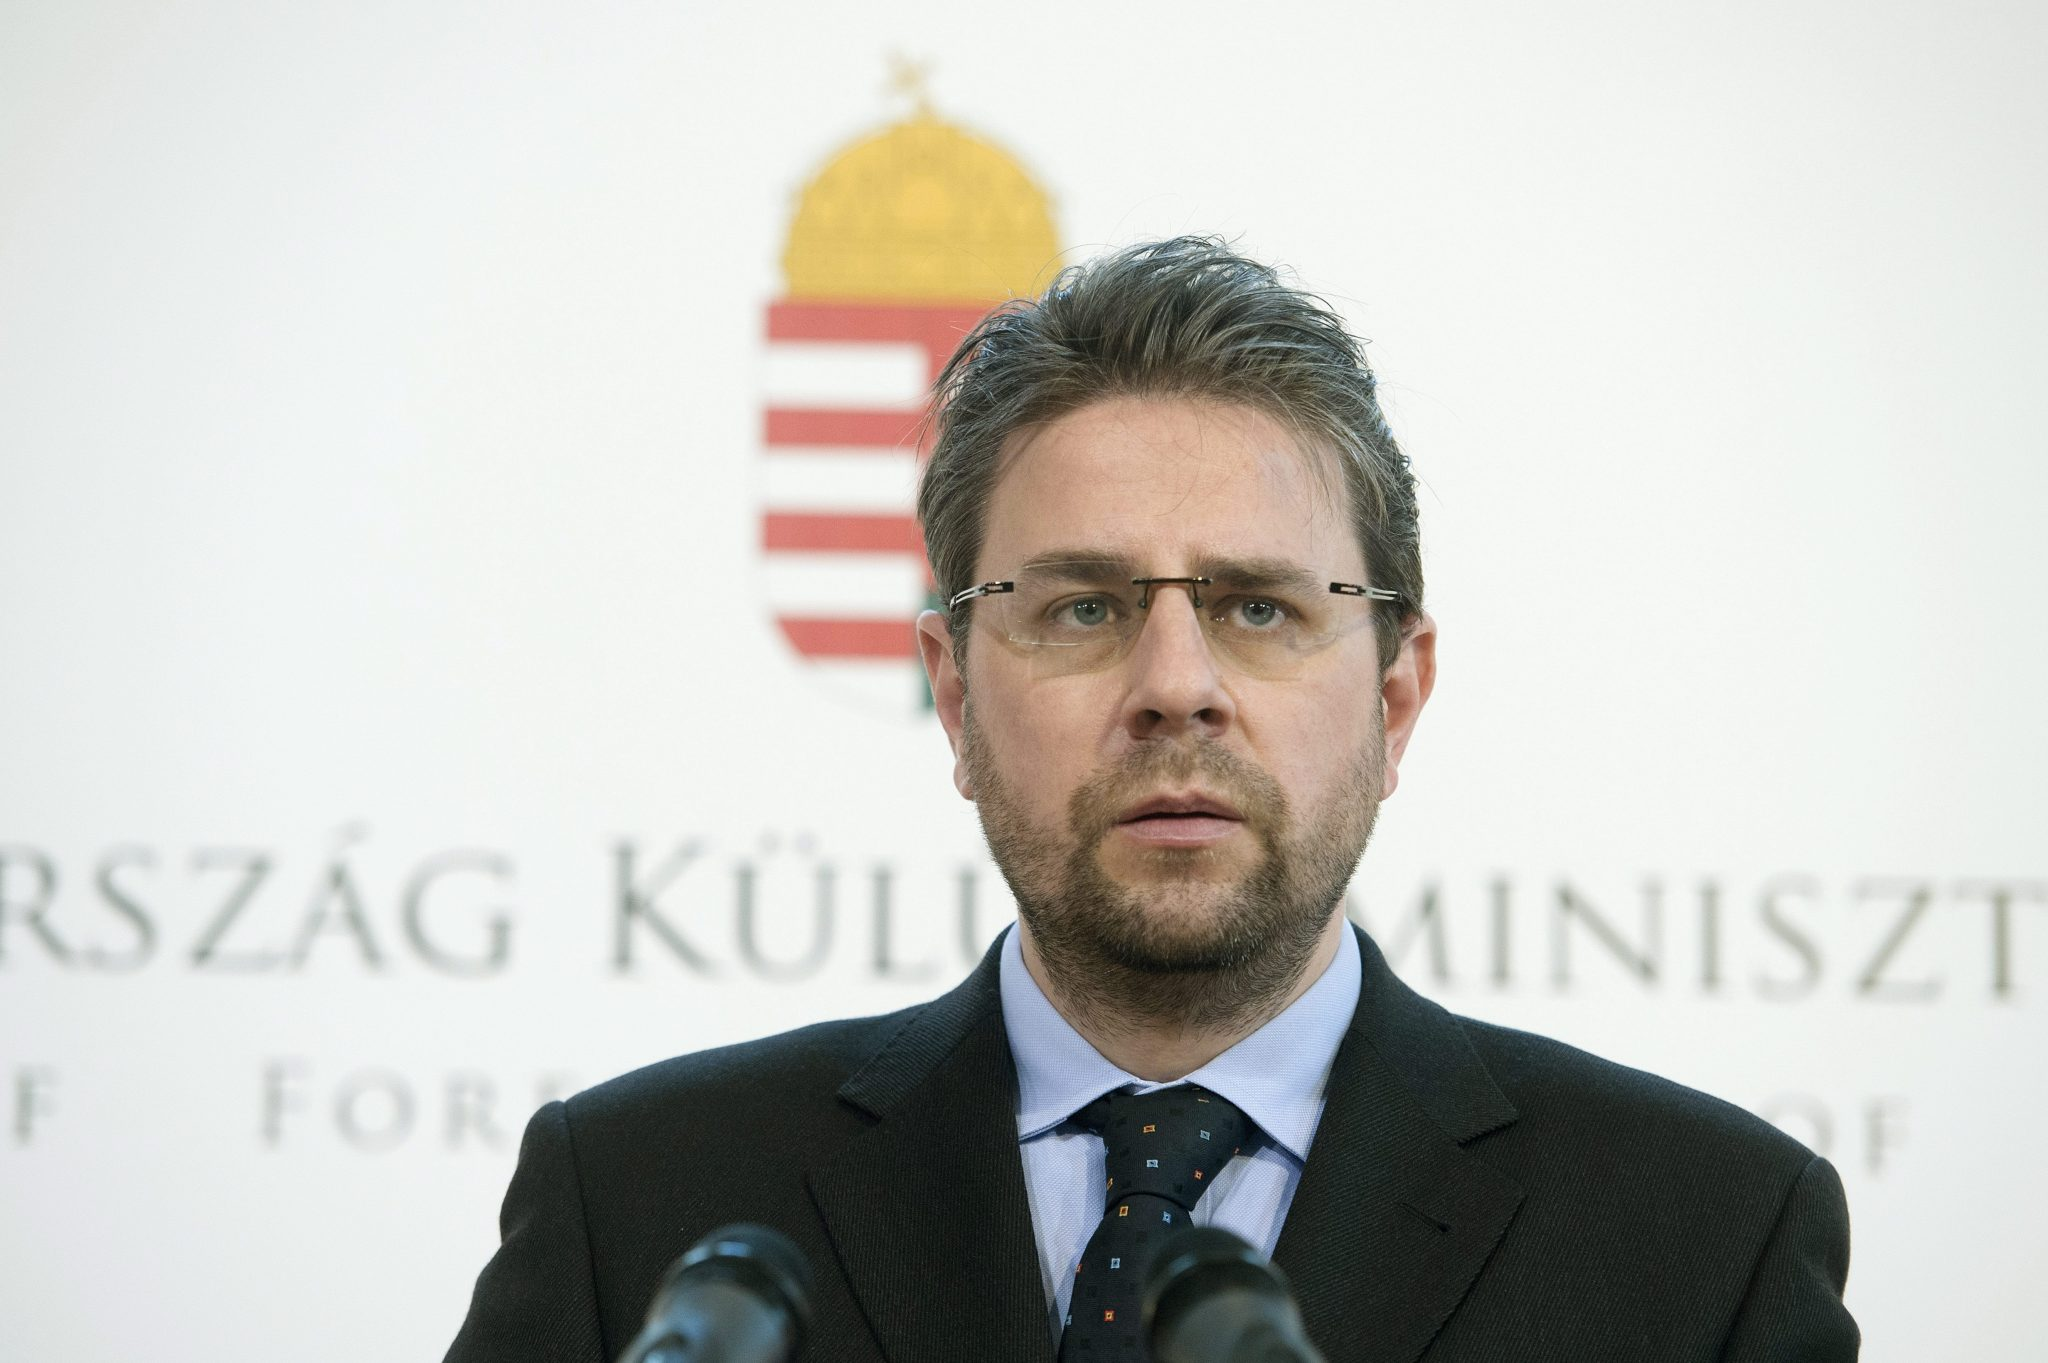 Committee Report on Hungarian Ambassador's Child Pornography Case Sealed for 10 Years post's picture